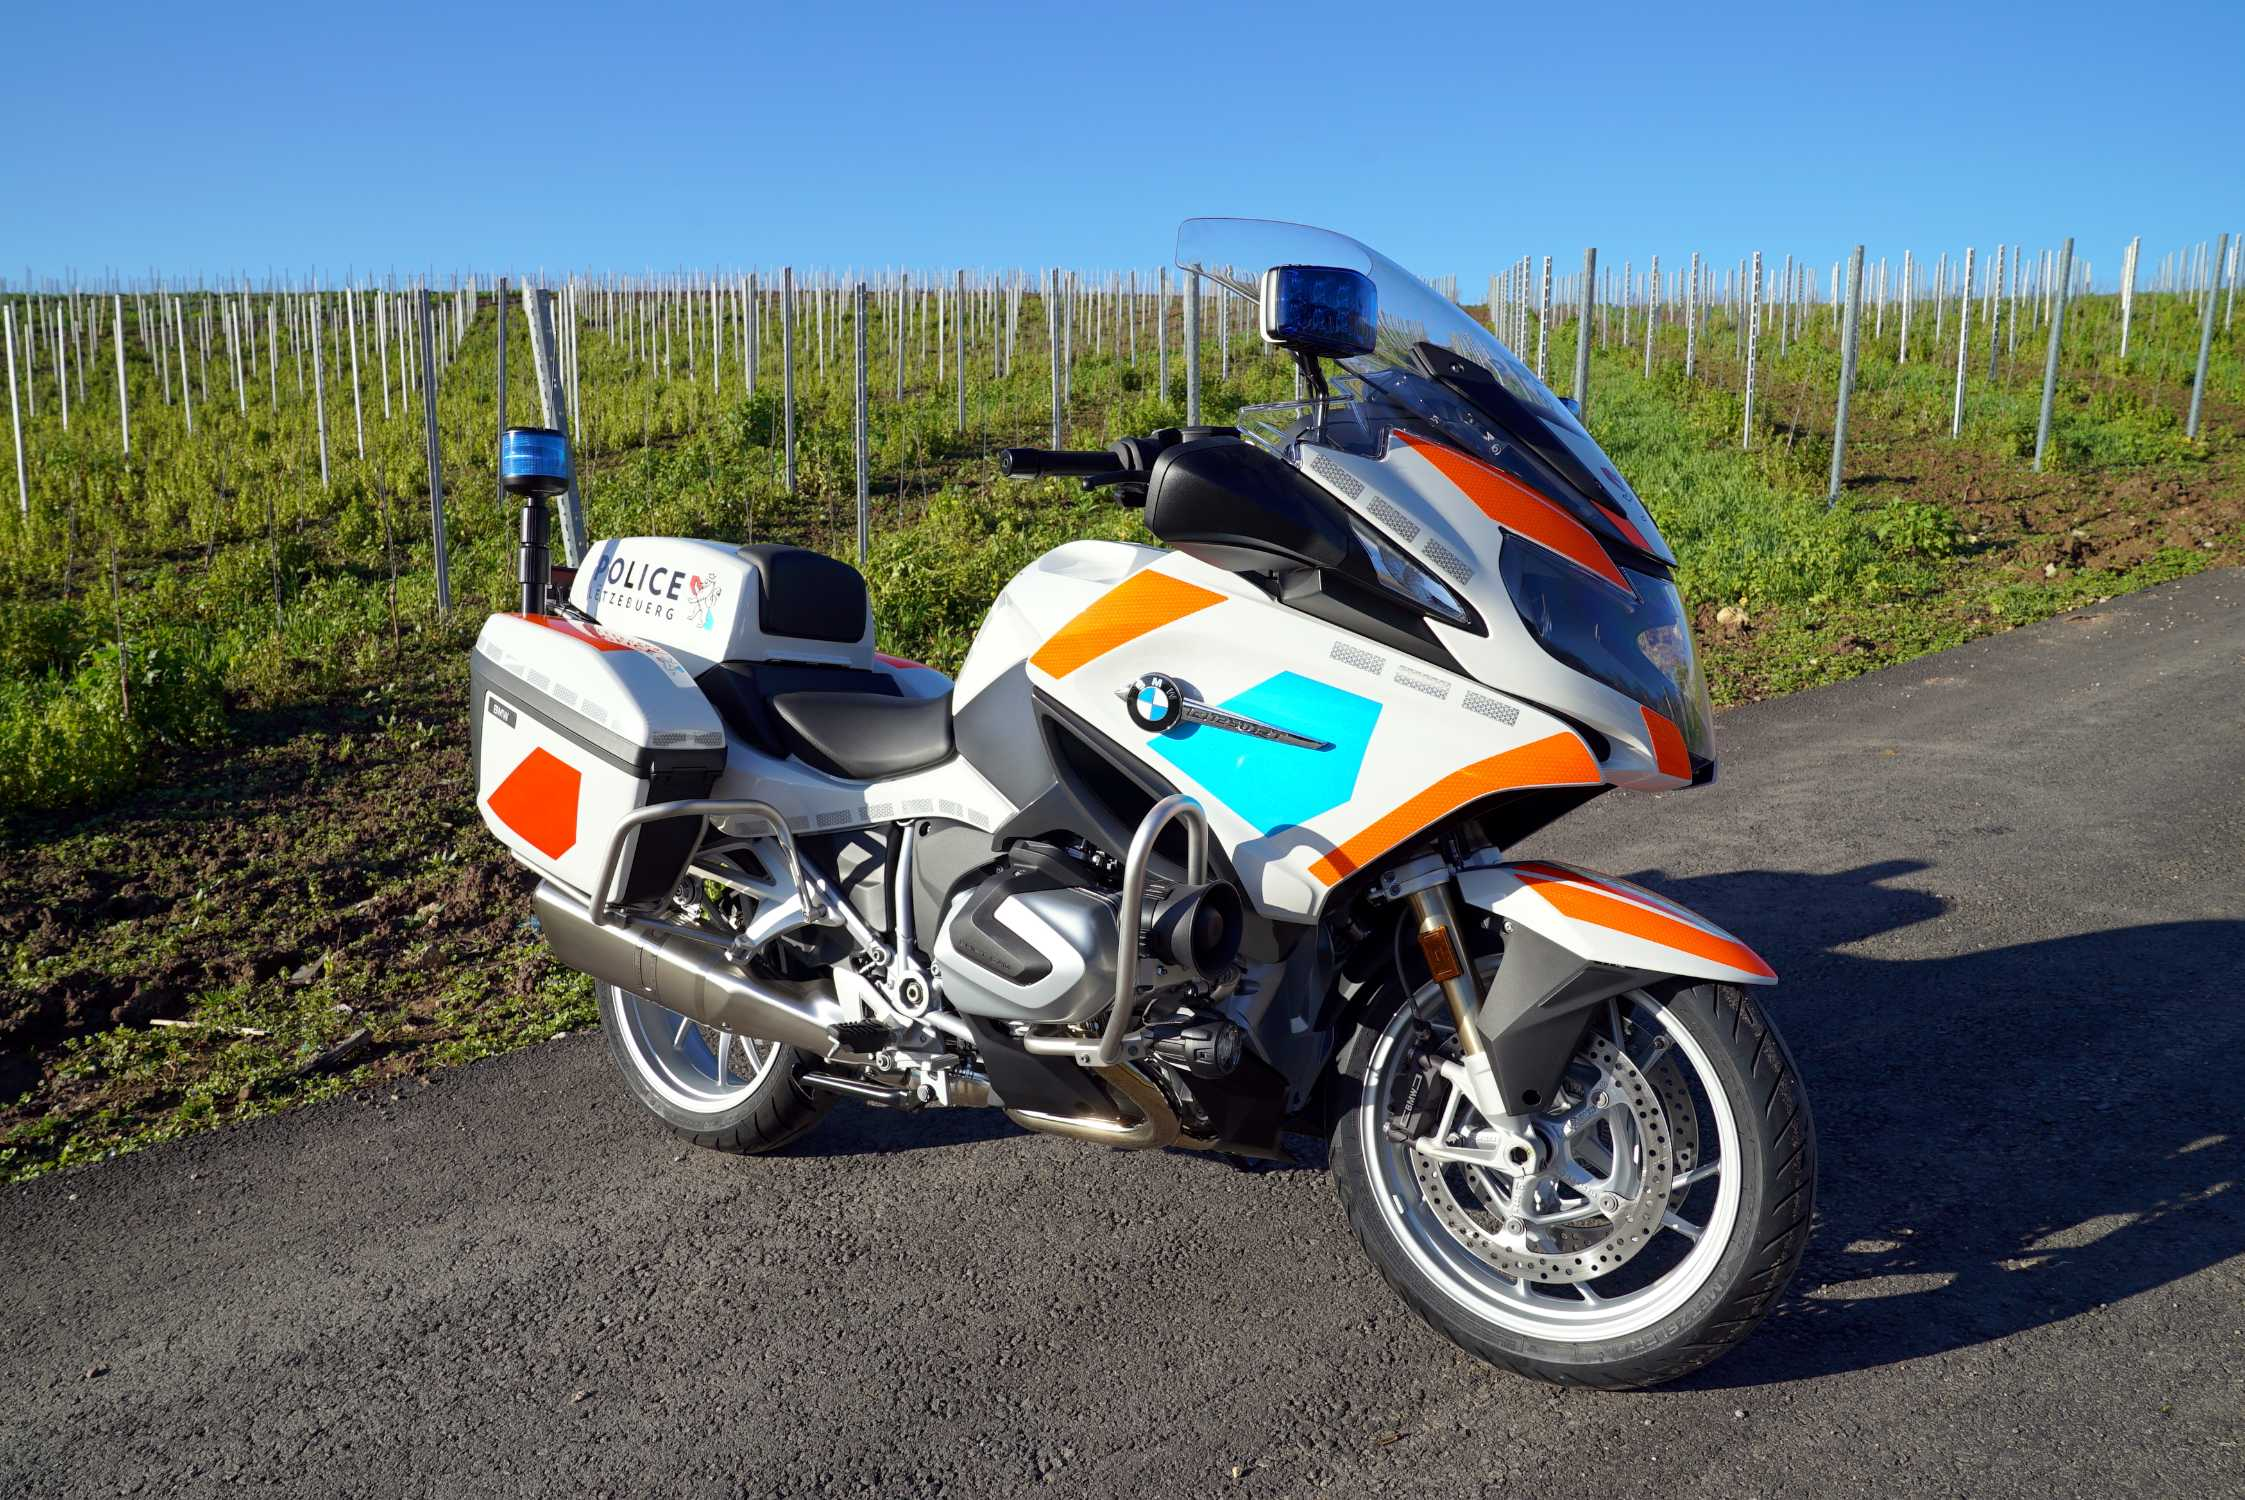 BMW delivery for the Grand Ducal Police  (04/2020)